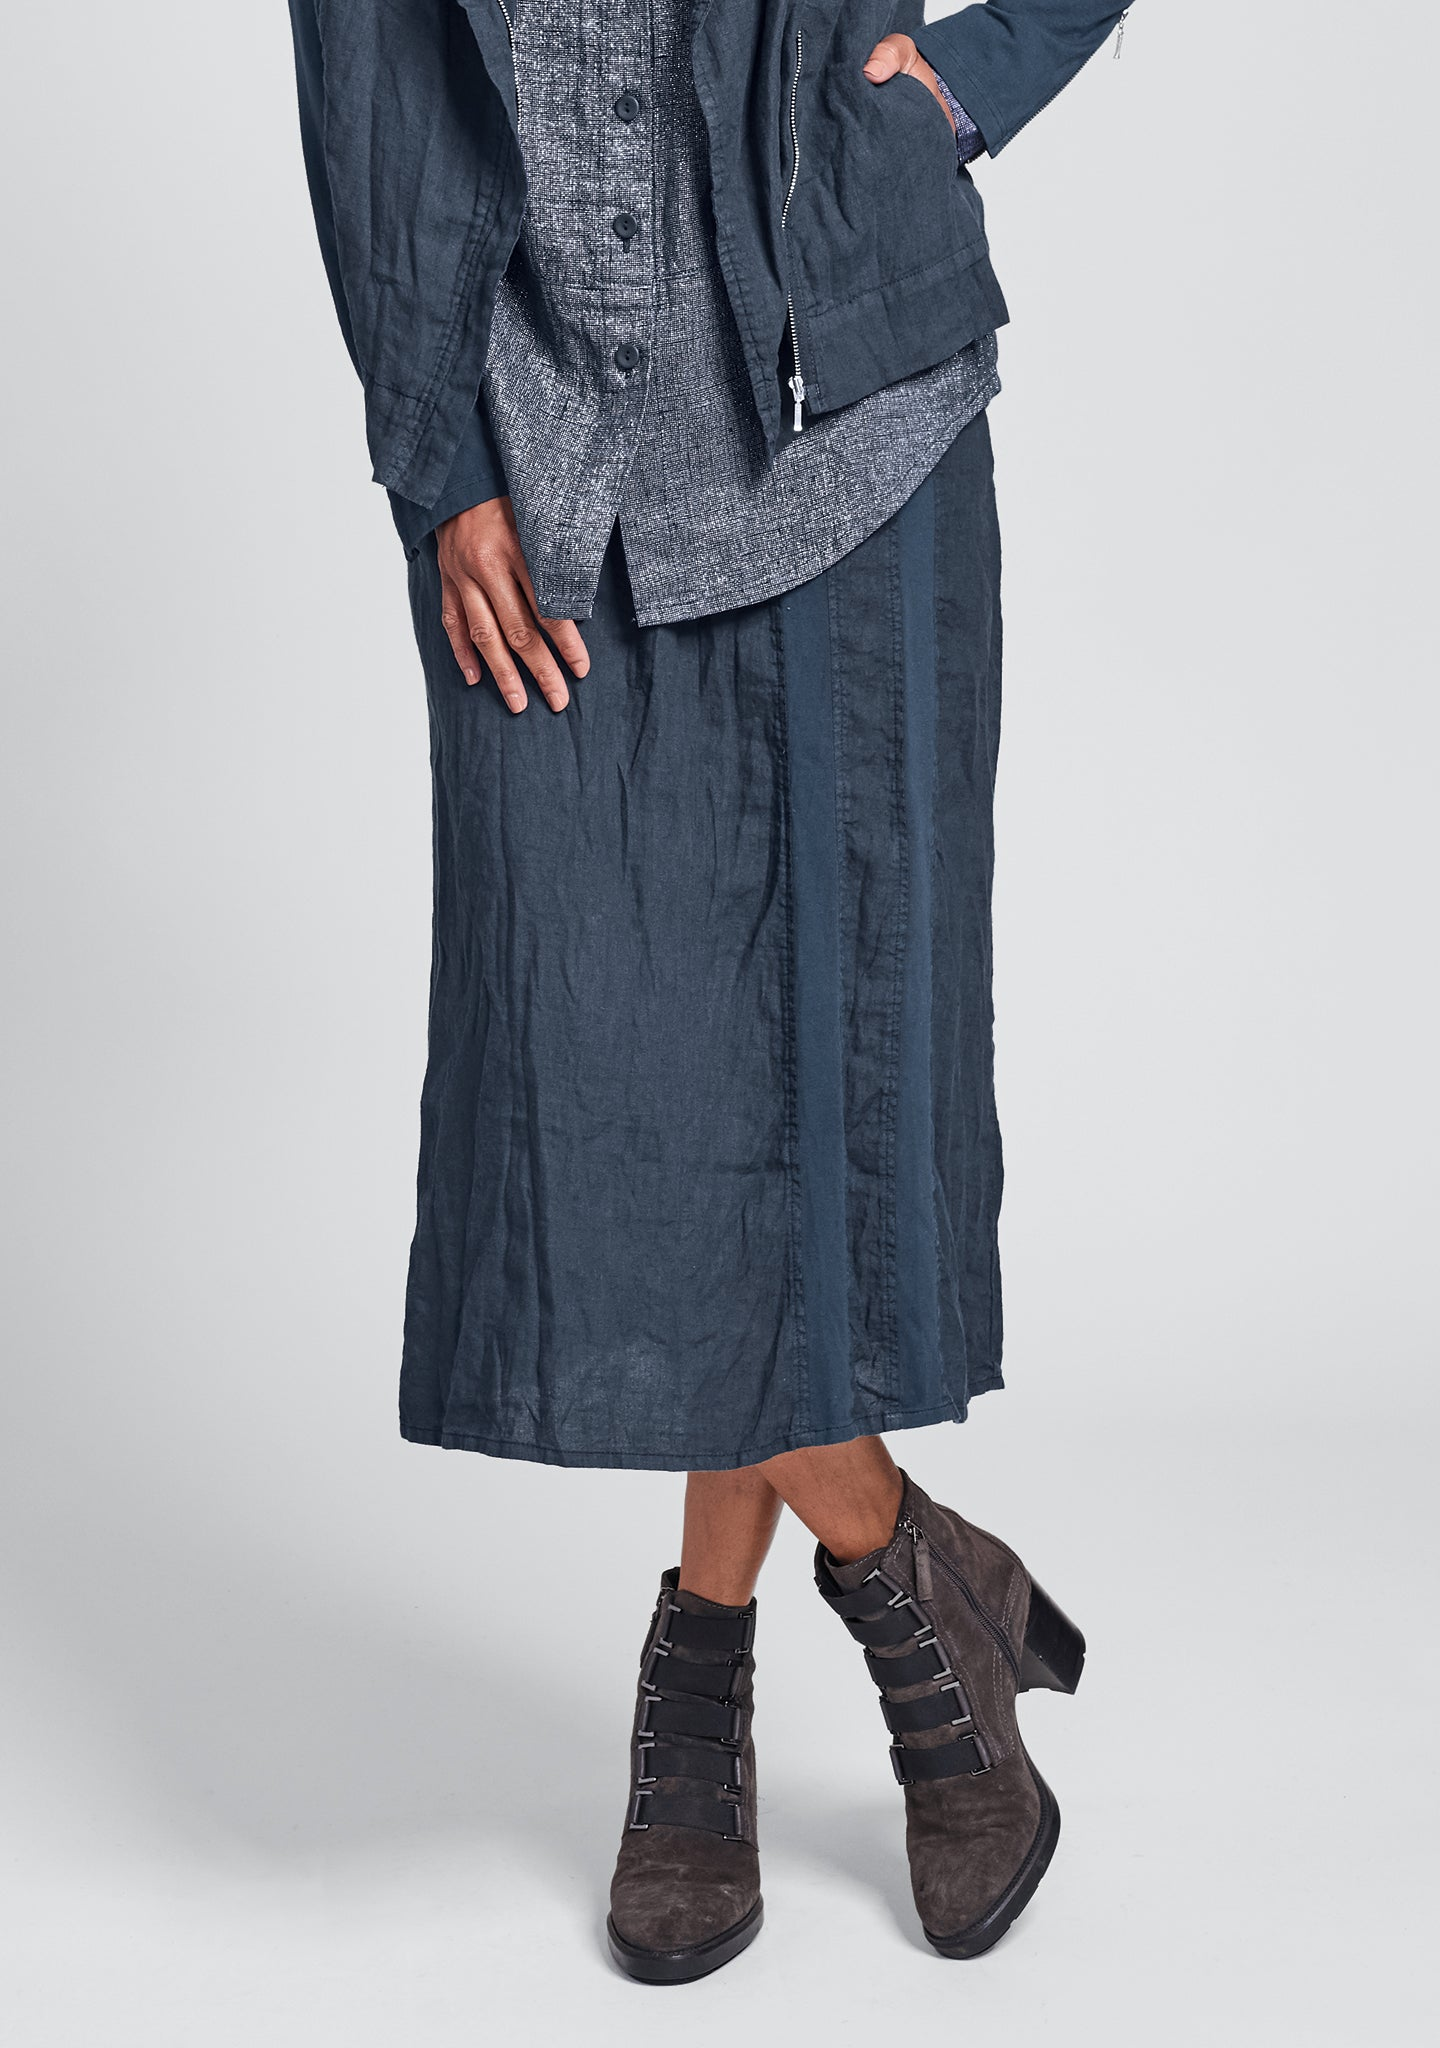 harbor skirt linen drawstring skirt blue